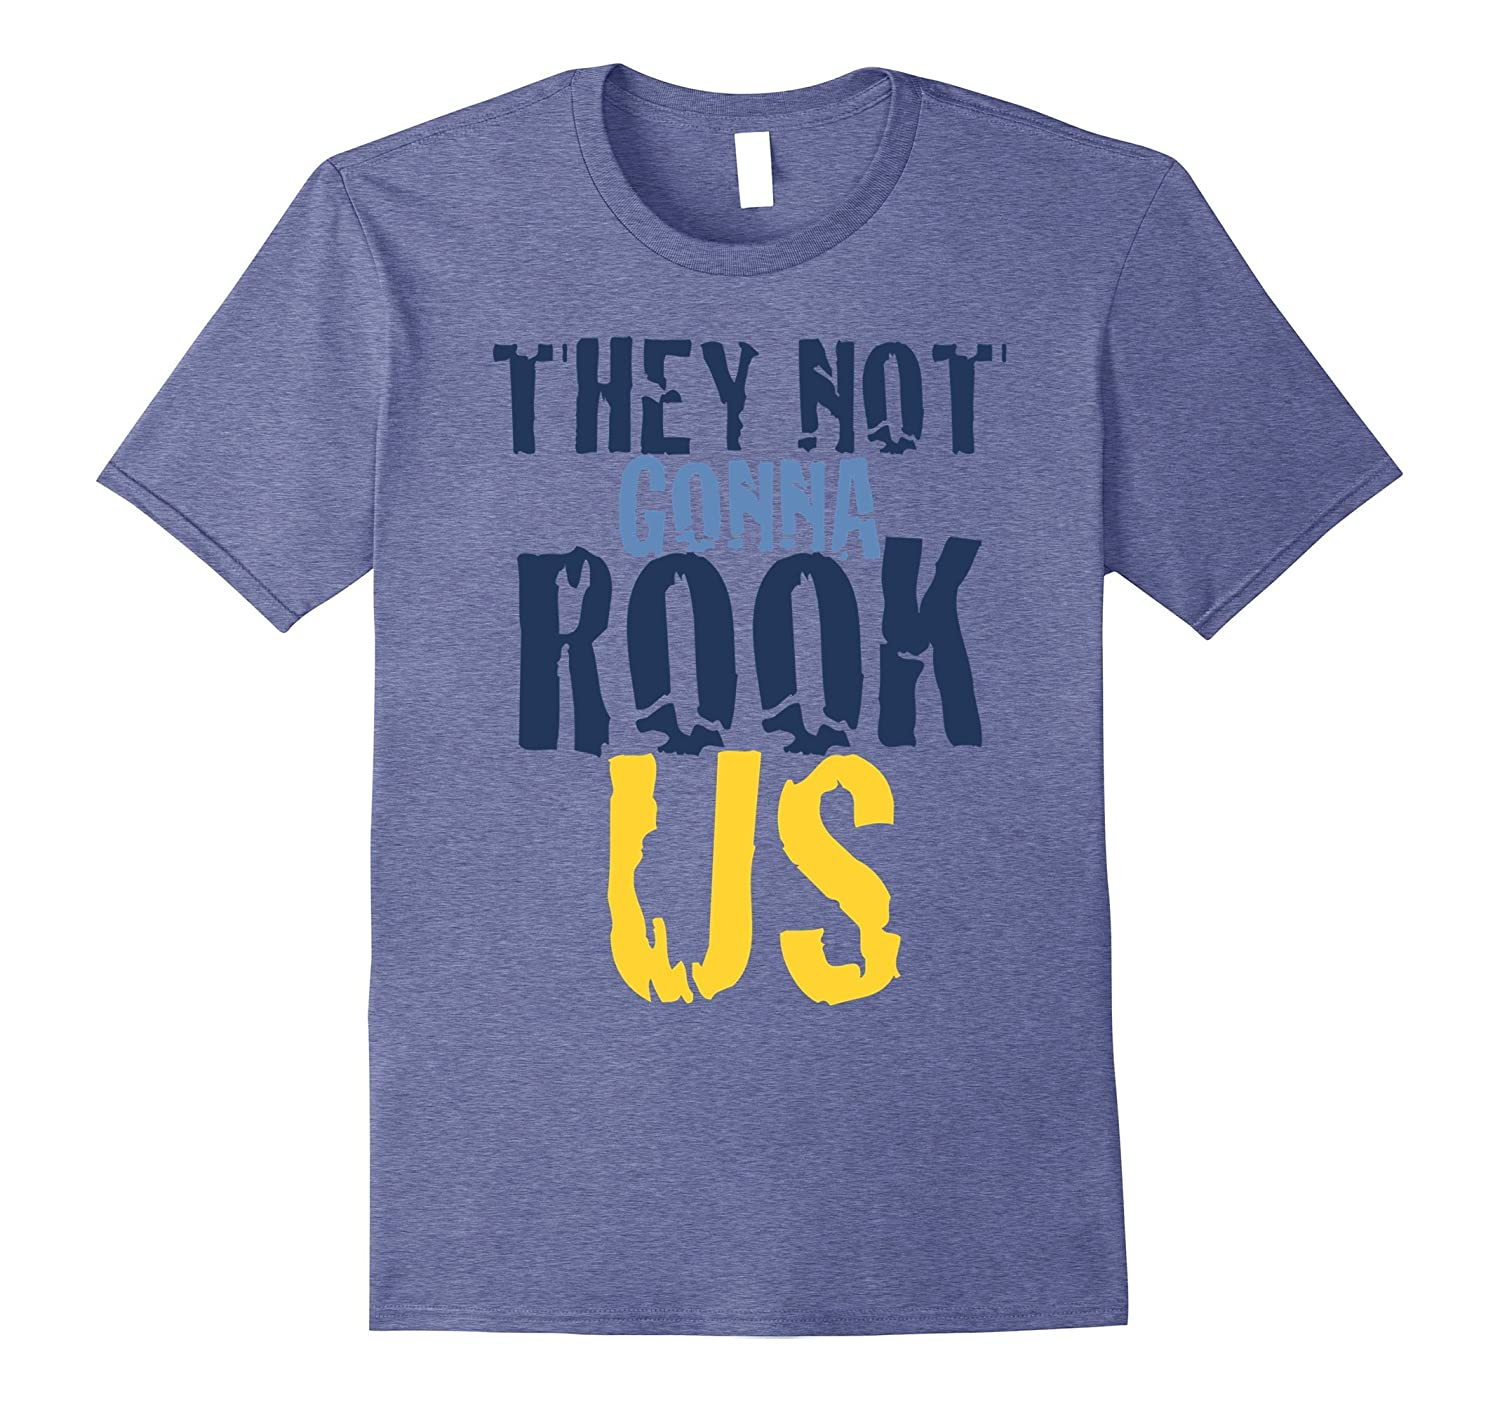 Take That For Data Tee They Not Gonna Rook Us T-Shirt-RT